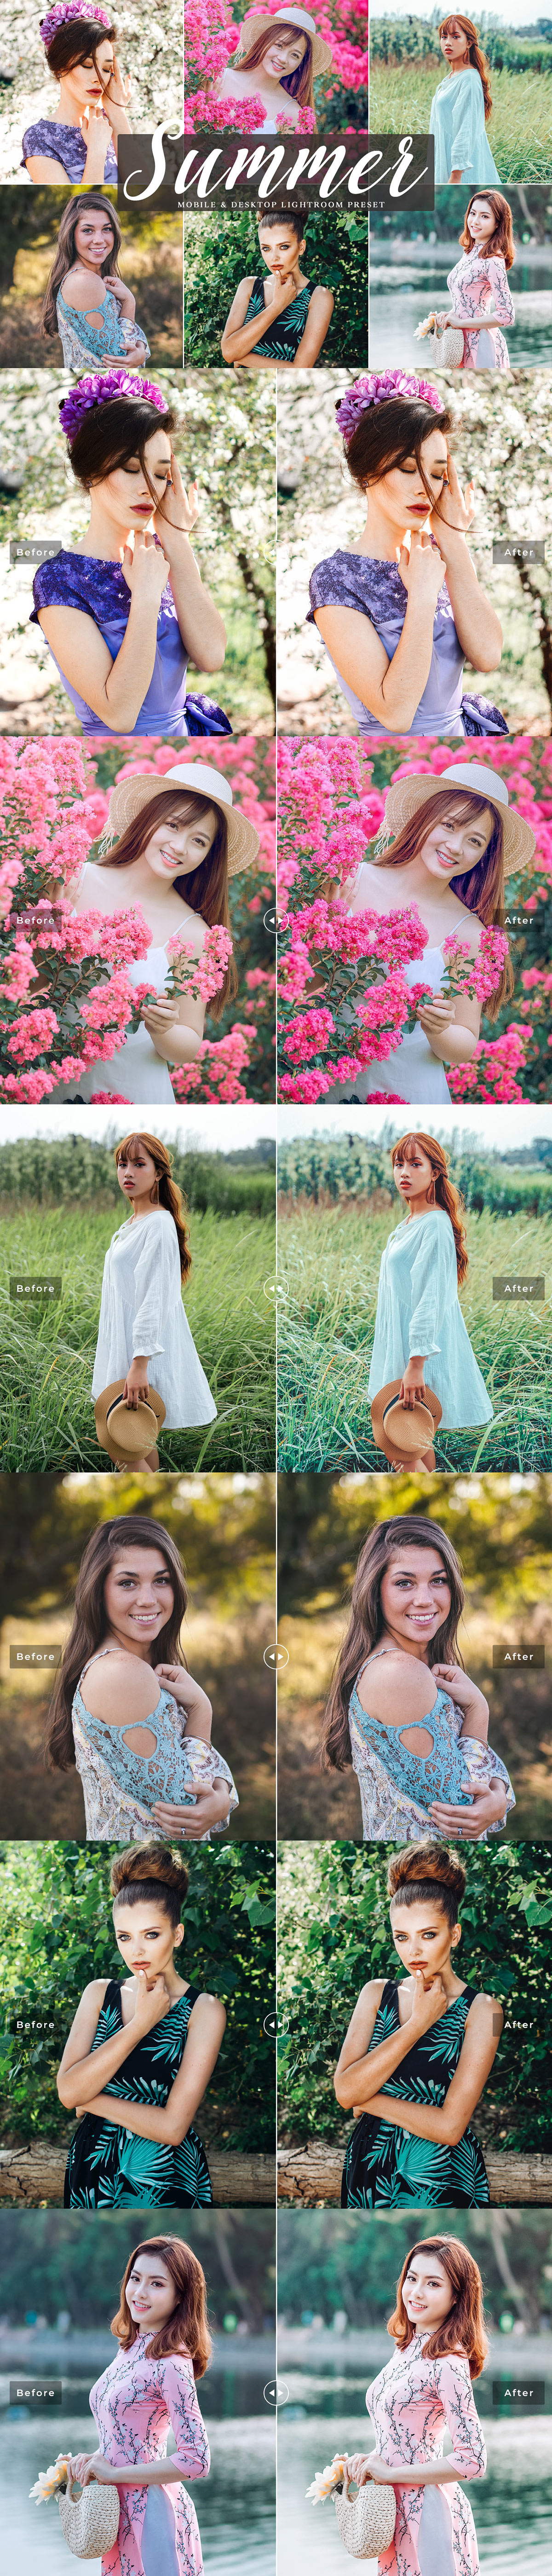 Free Summer #Mobile #Lightroom #PresetsPack was created to give your photographs a warm summer look by warming them just in a single click!